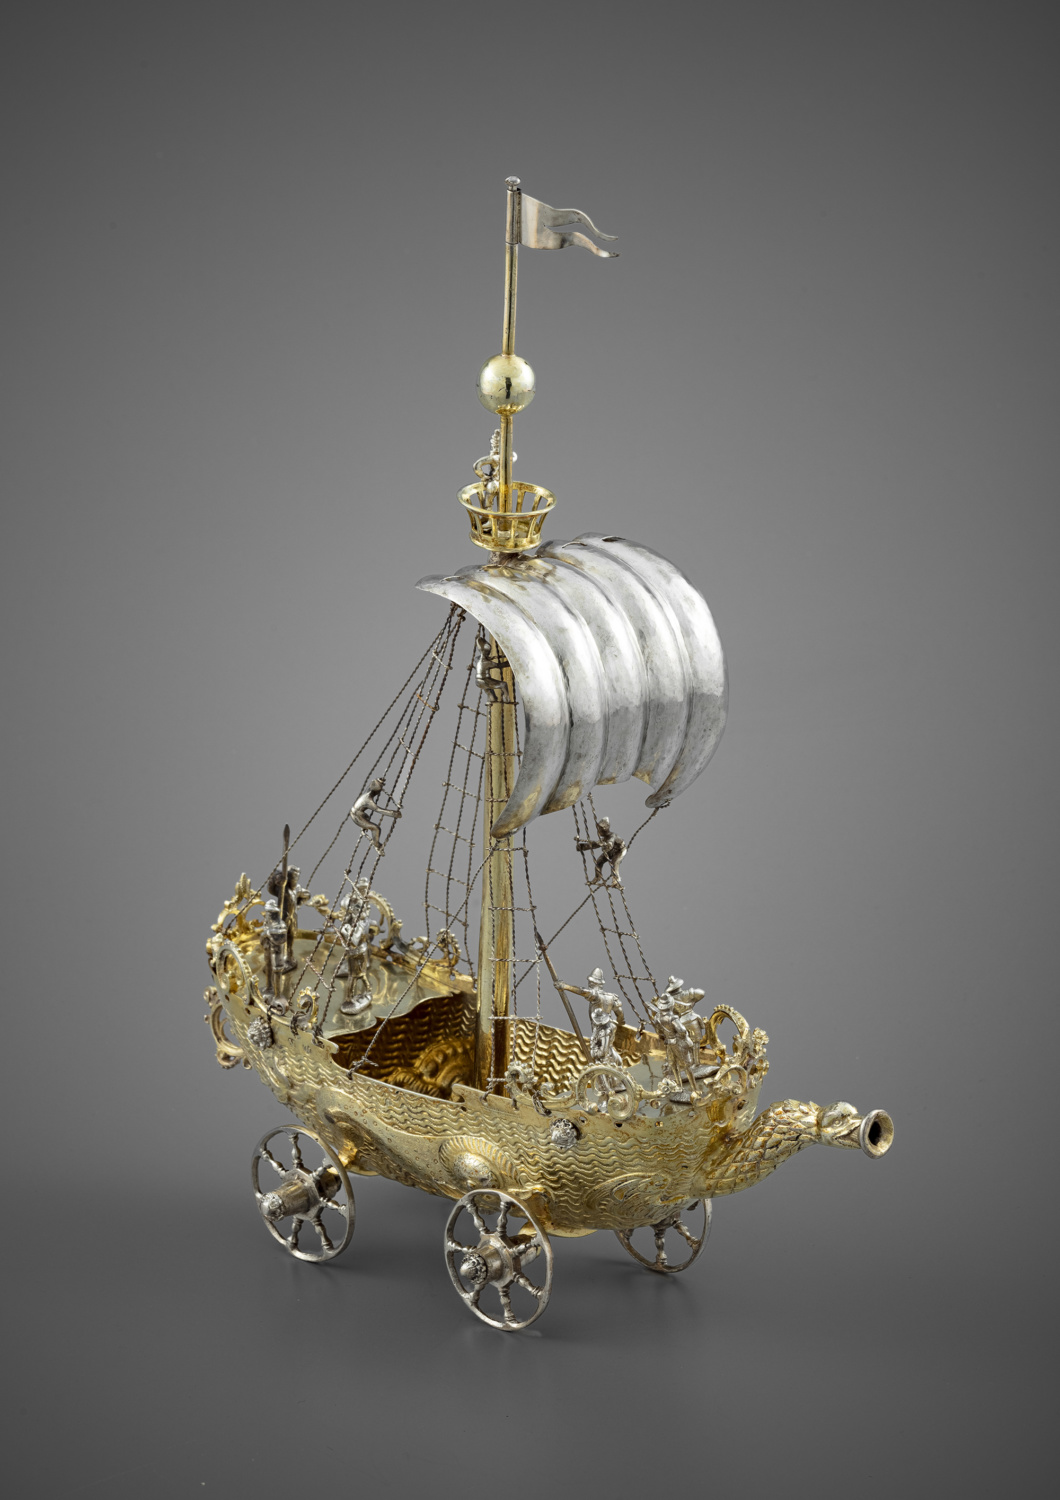 A silver and silver-gilt drinking cup in the shape of a vessel on wheels - Galerie Kugel